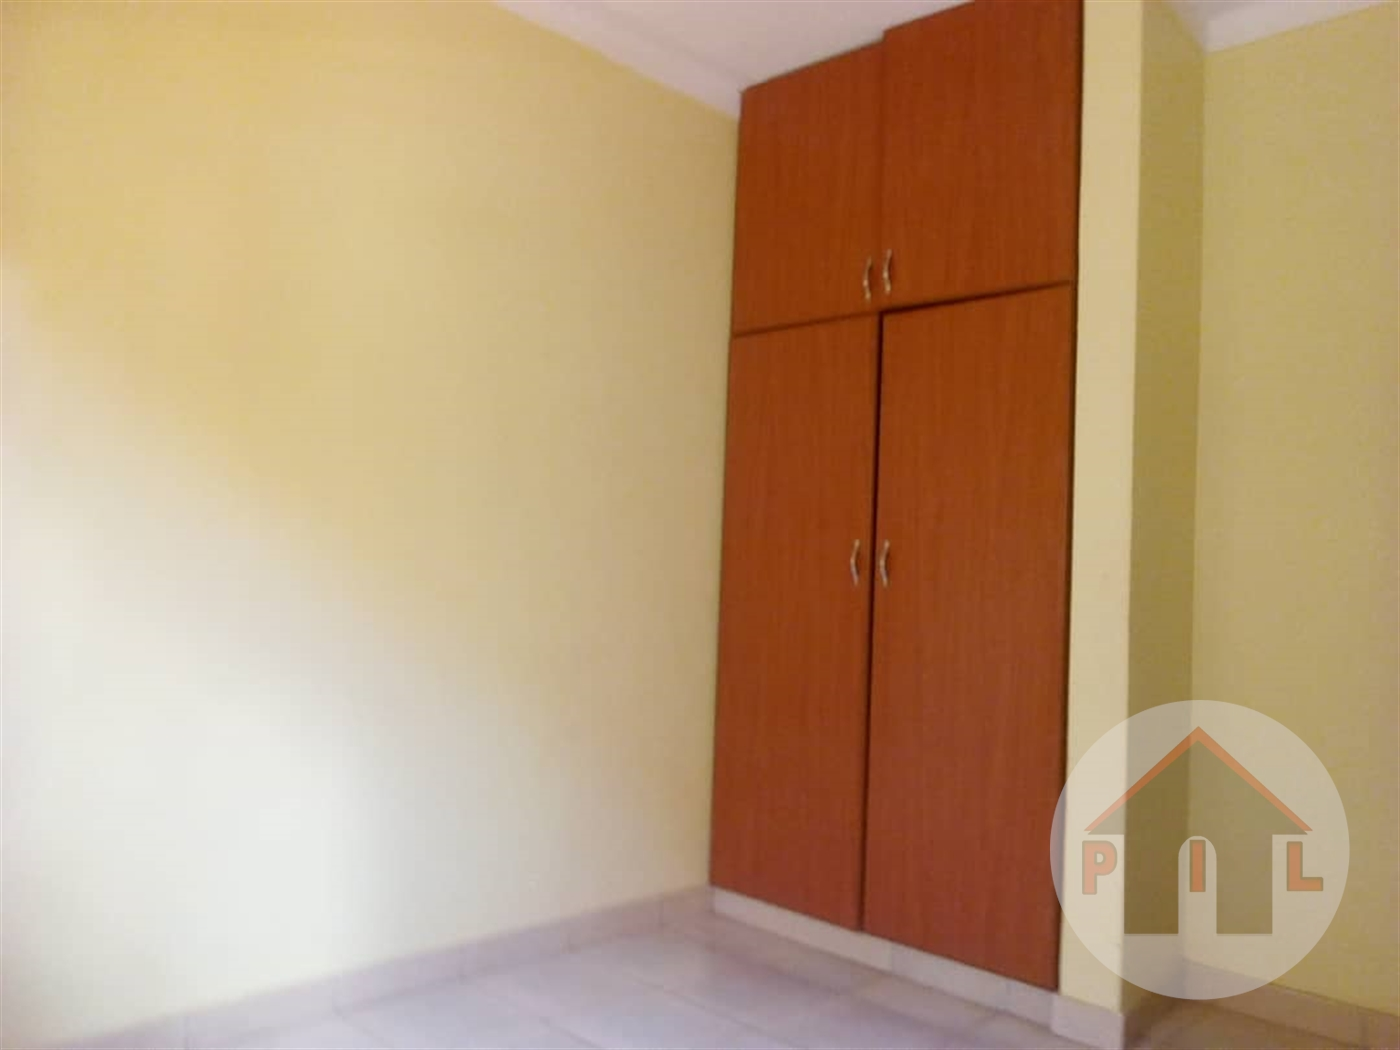 Rental units for sale in Buloba Wakiso